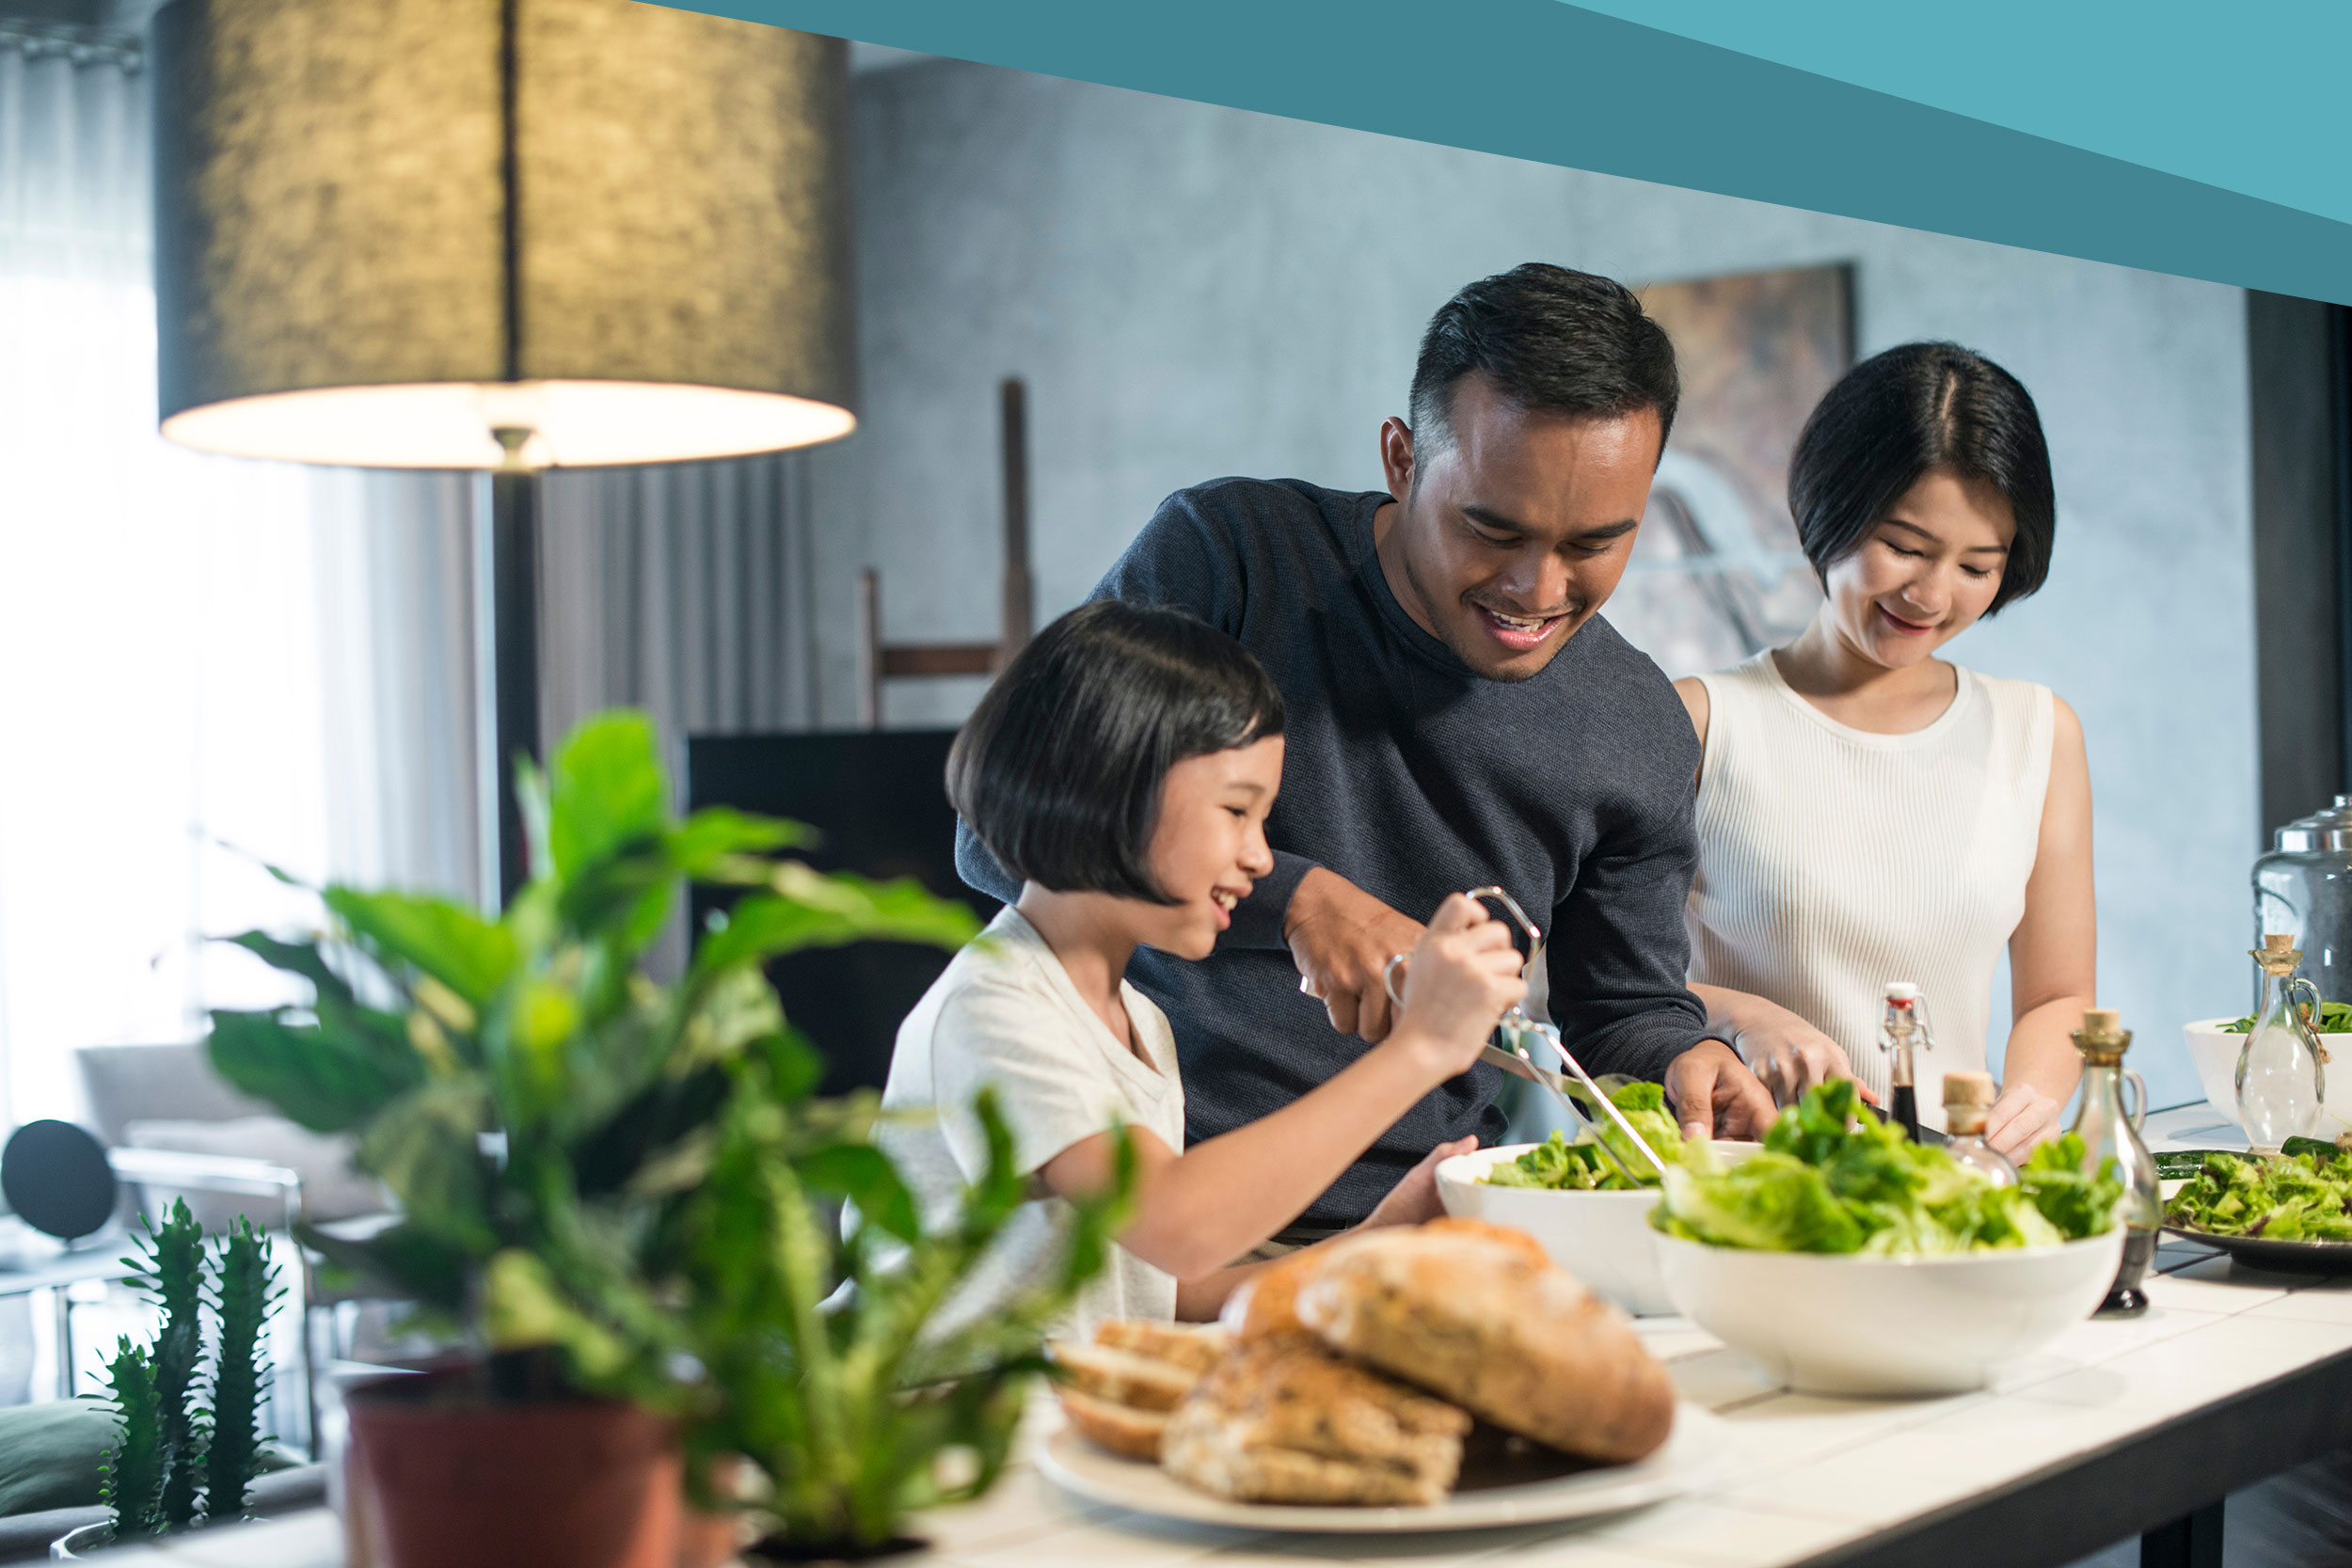 Happy family preparing food in the kitchen.